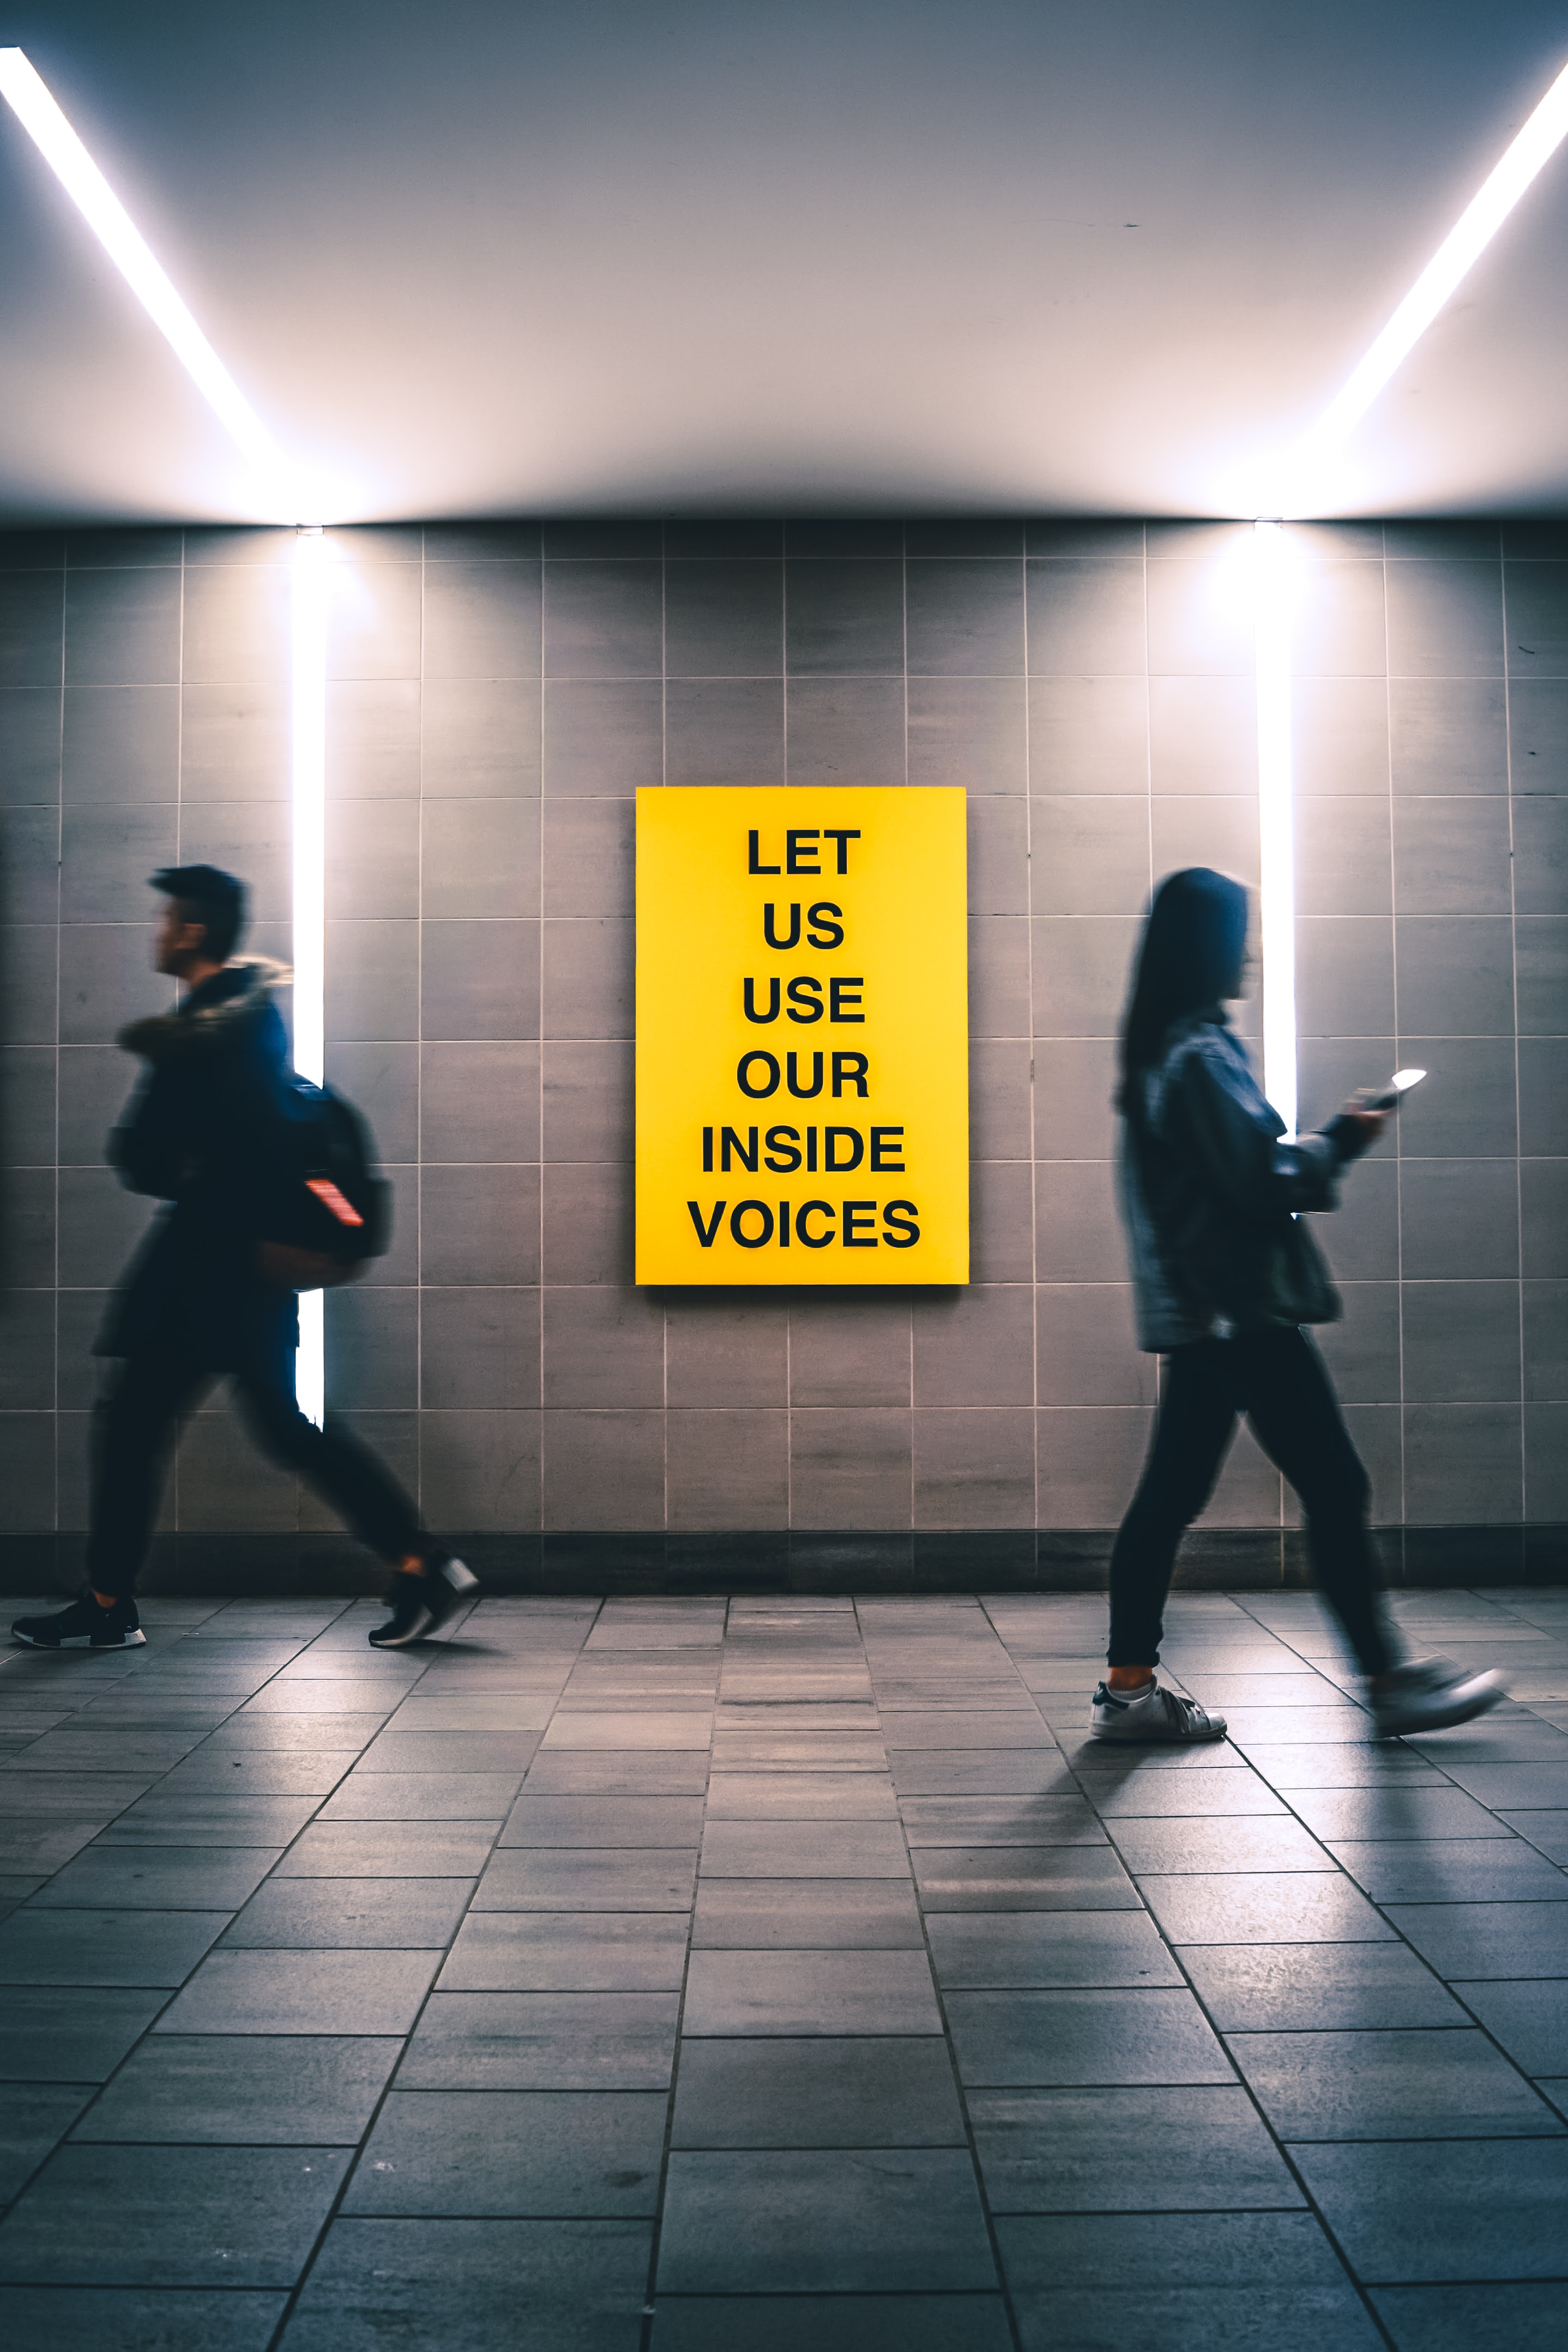 man and woman walking inside building near Let us use our inside voices sign